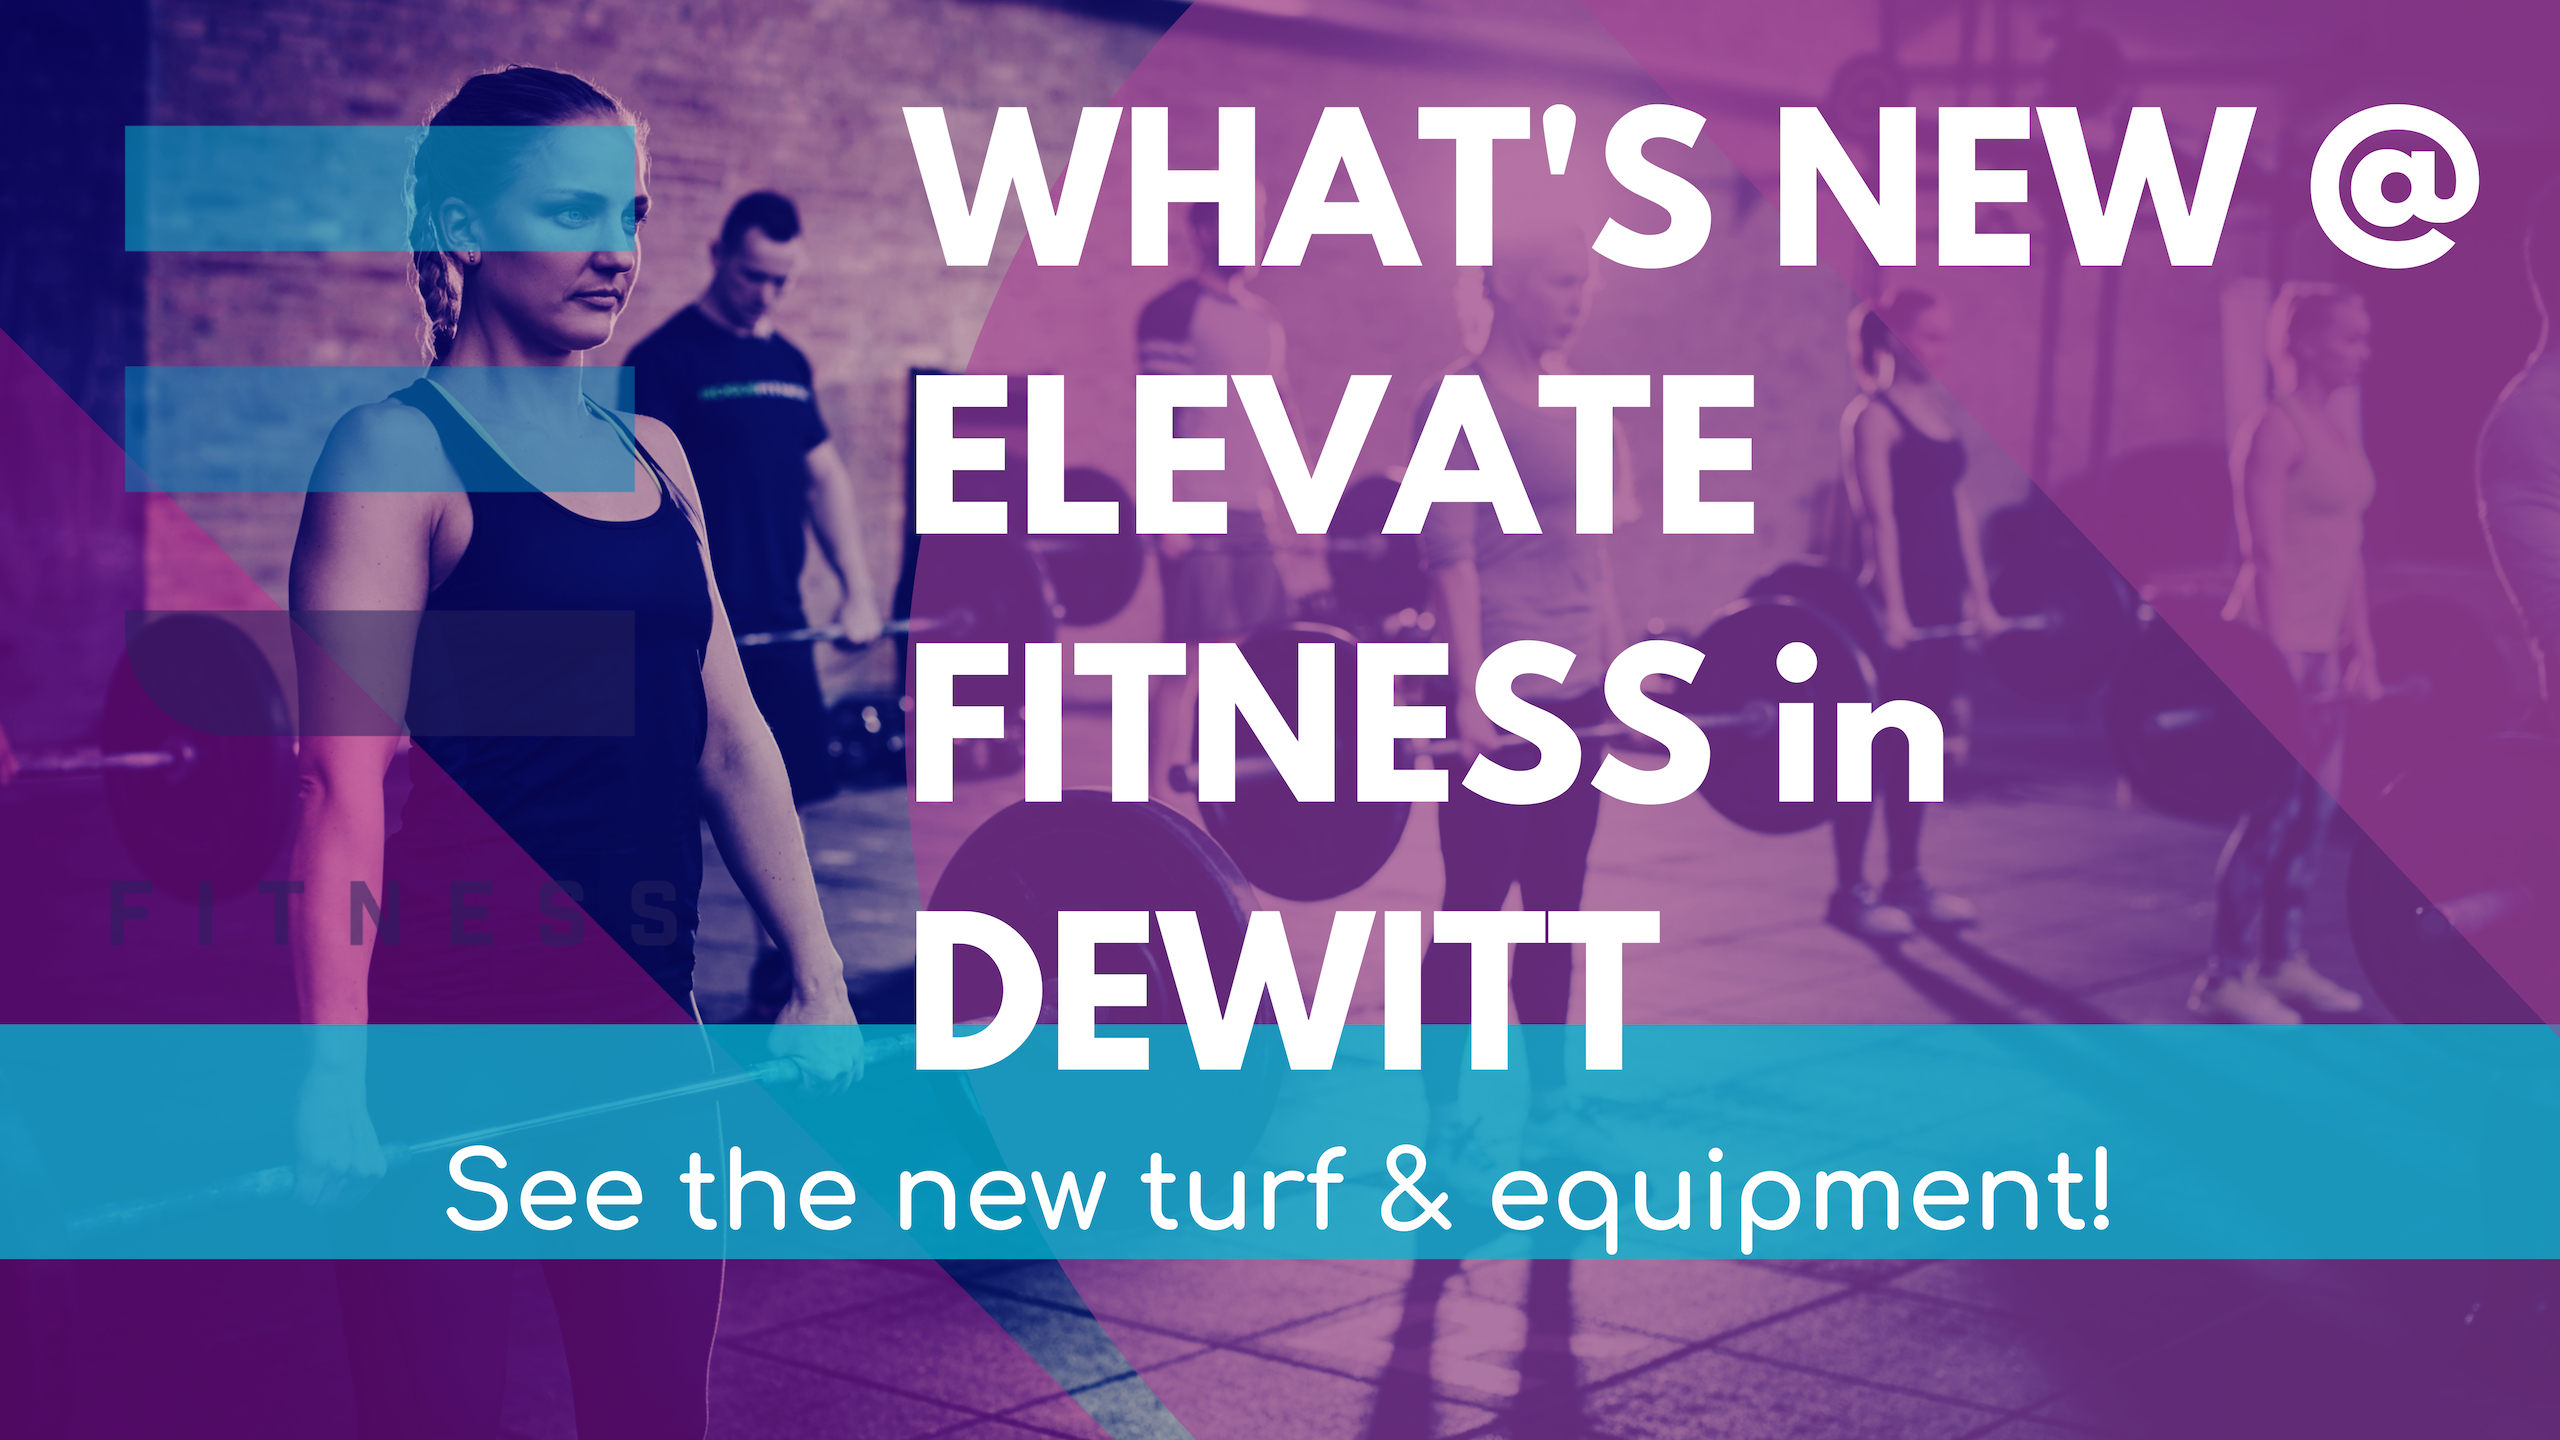 What's New at Elevate Fitness in Dewitt